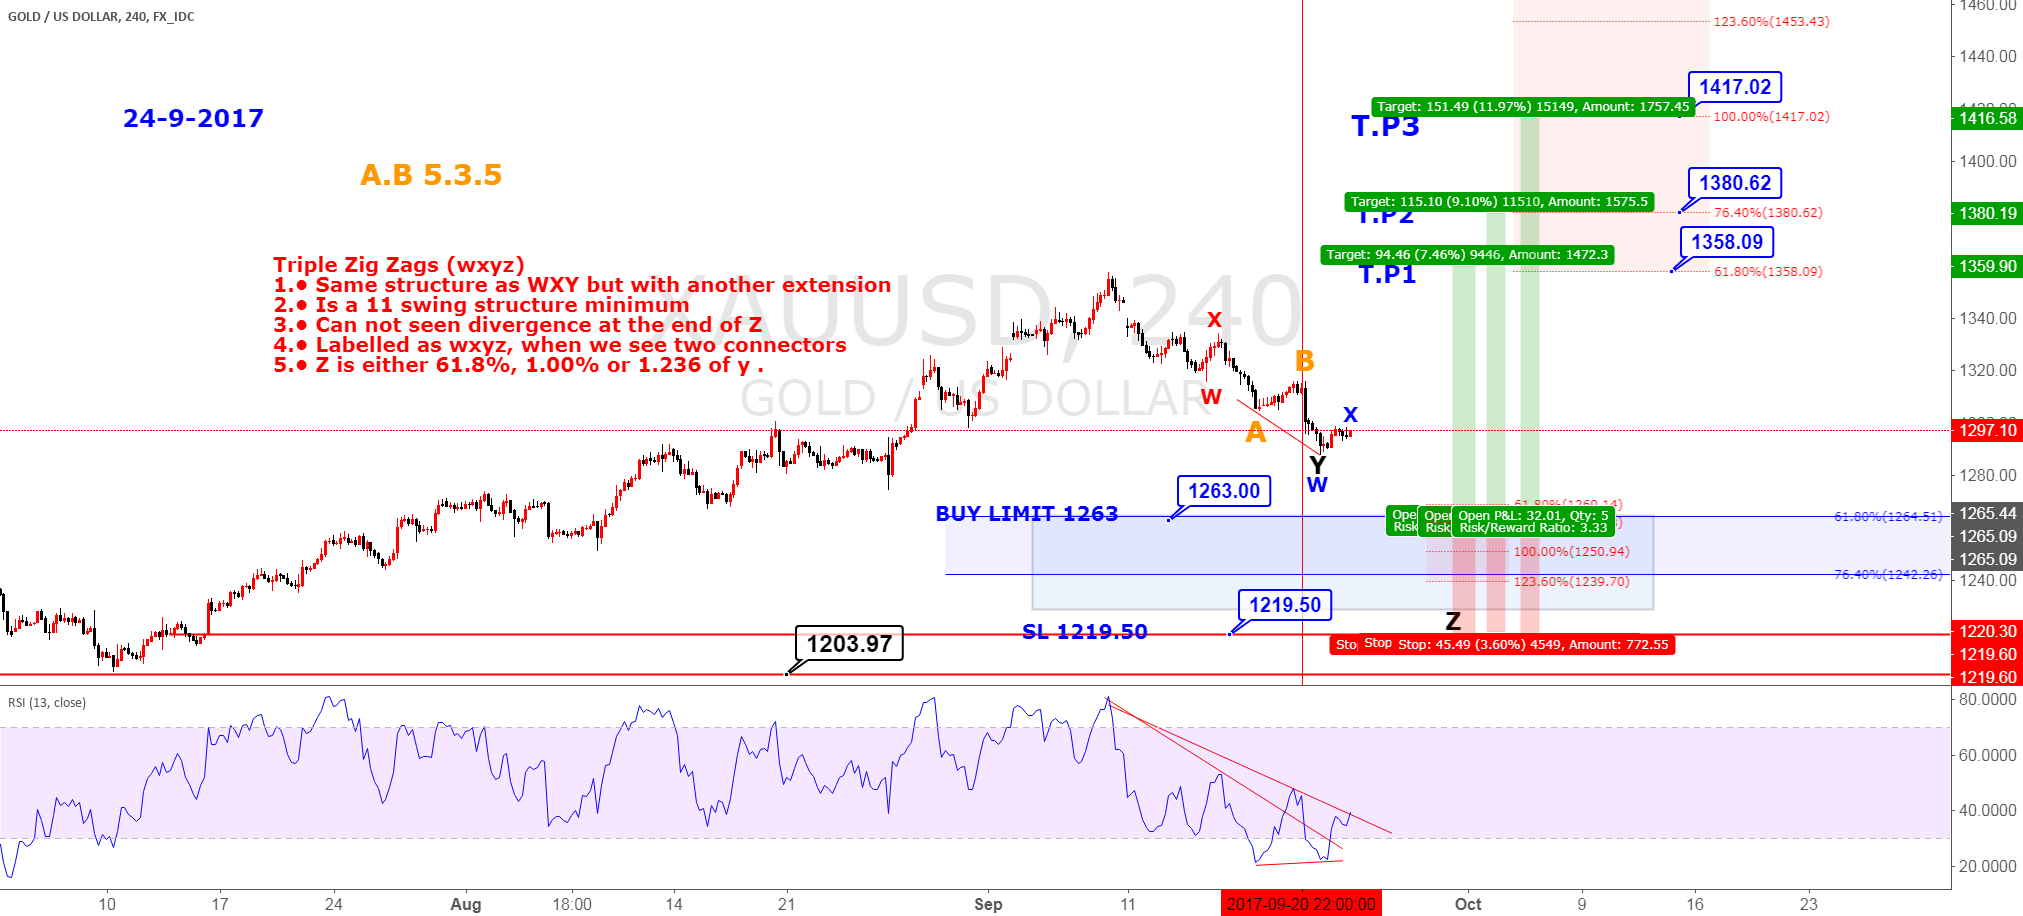 XAUUSD Elliot wave analysis buy limit